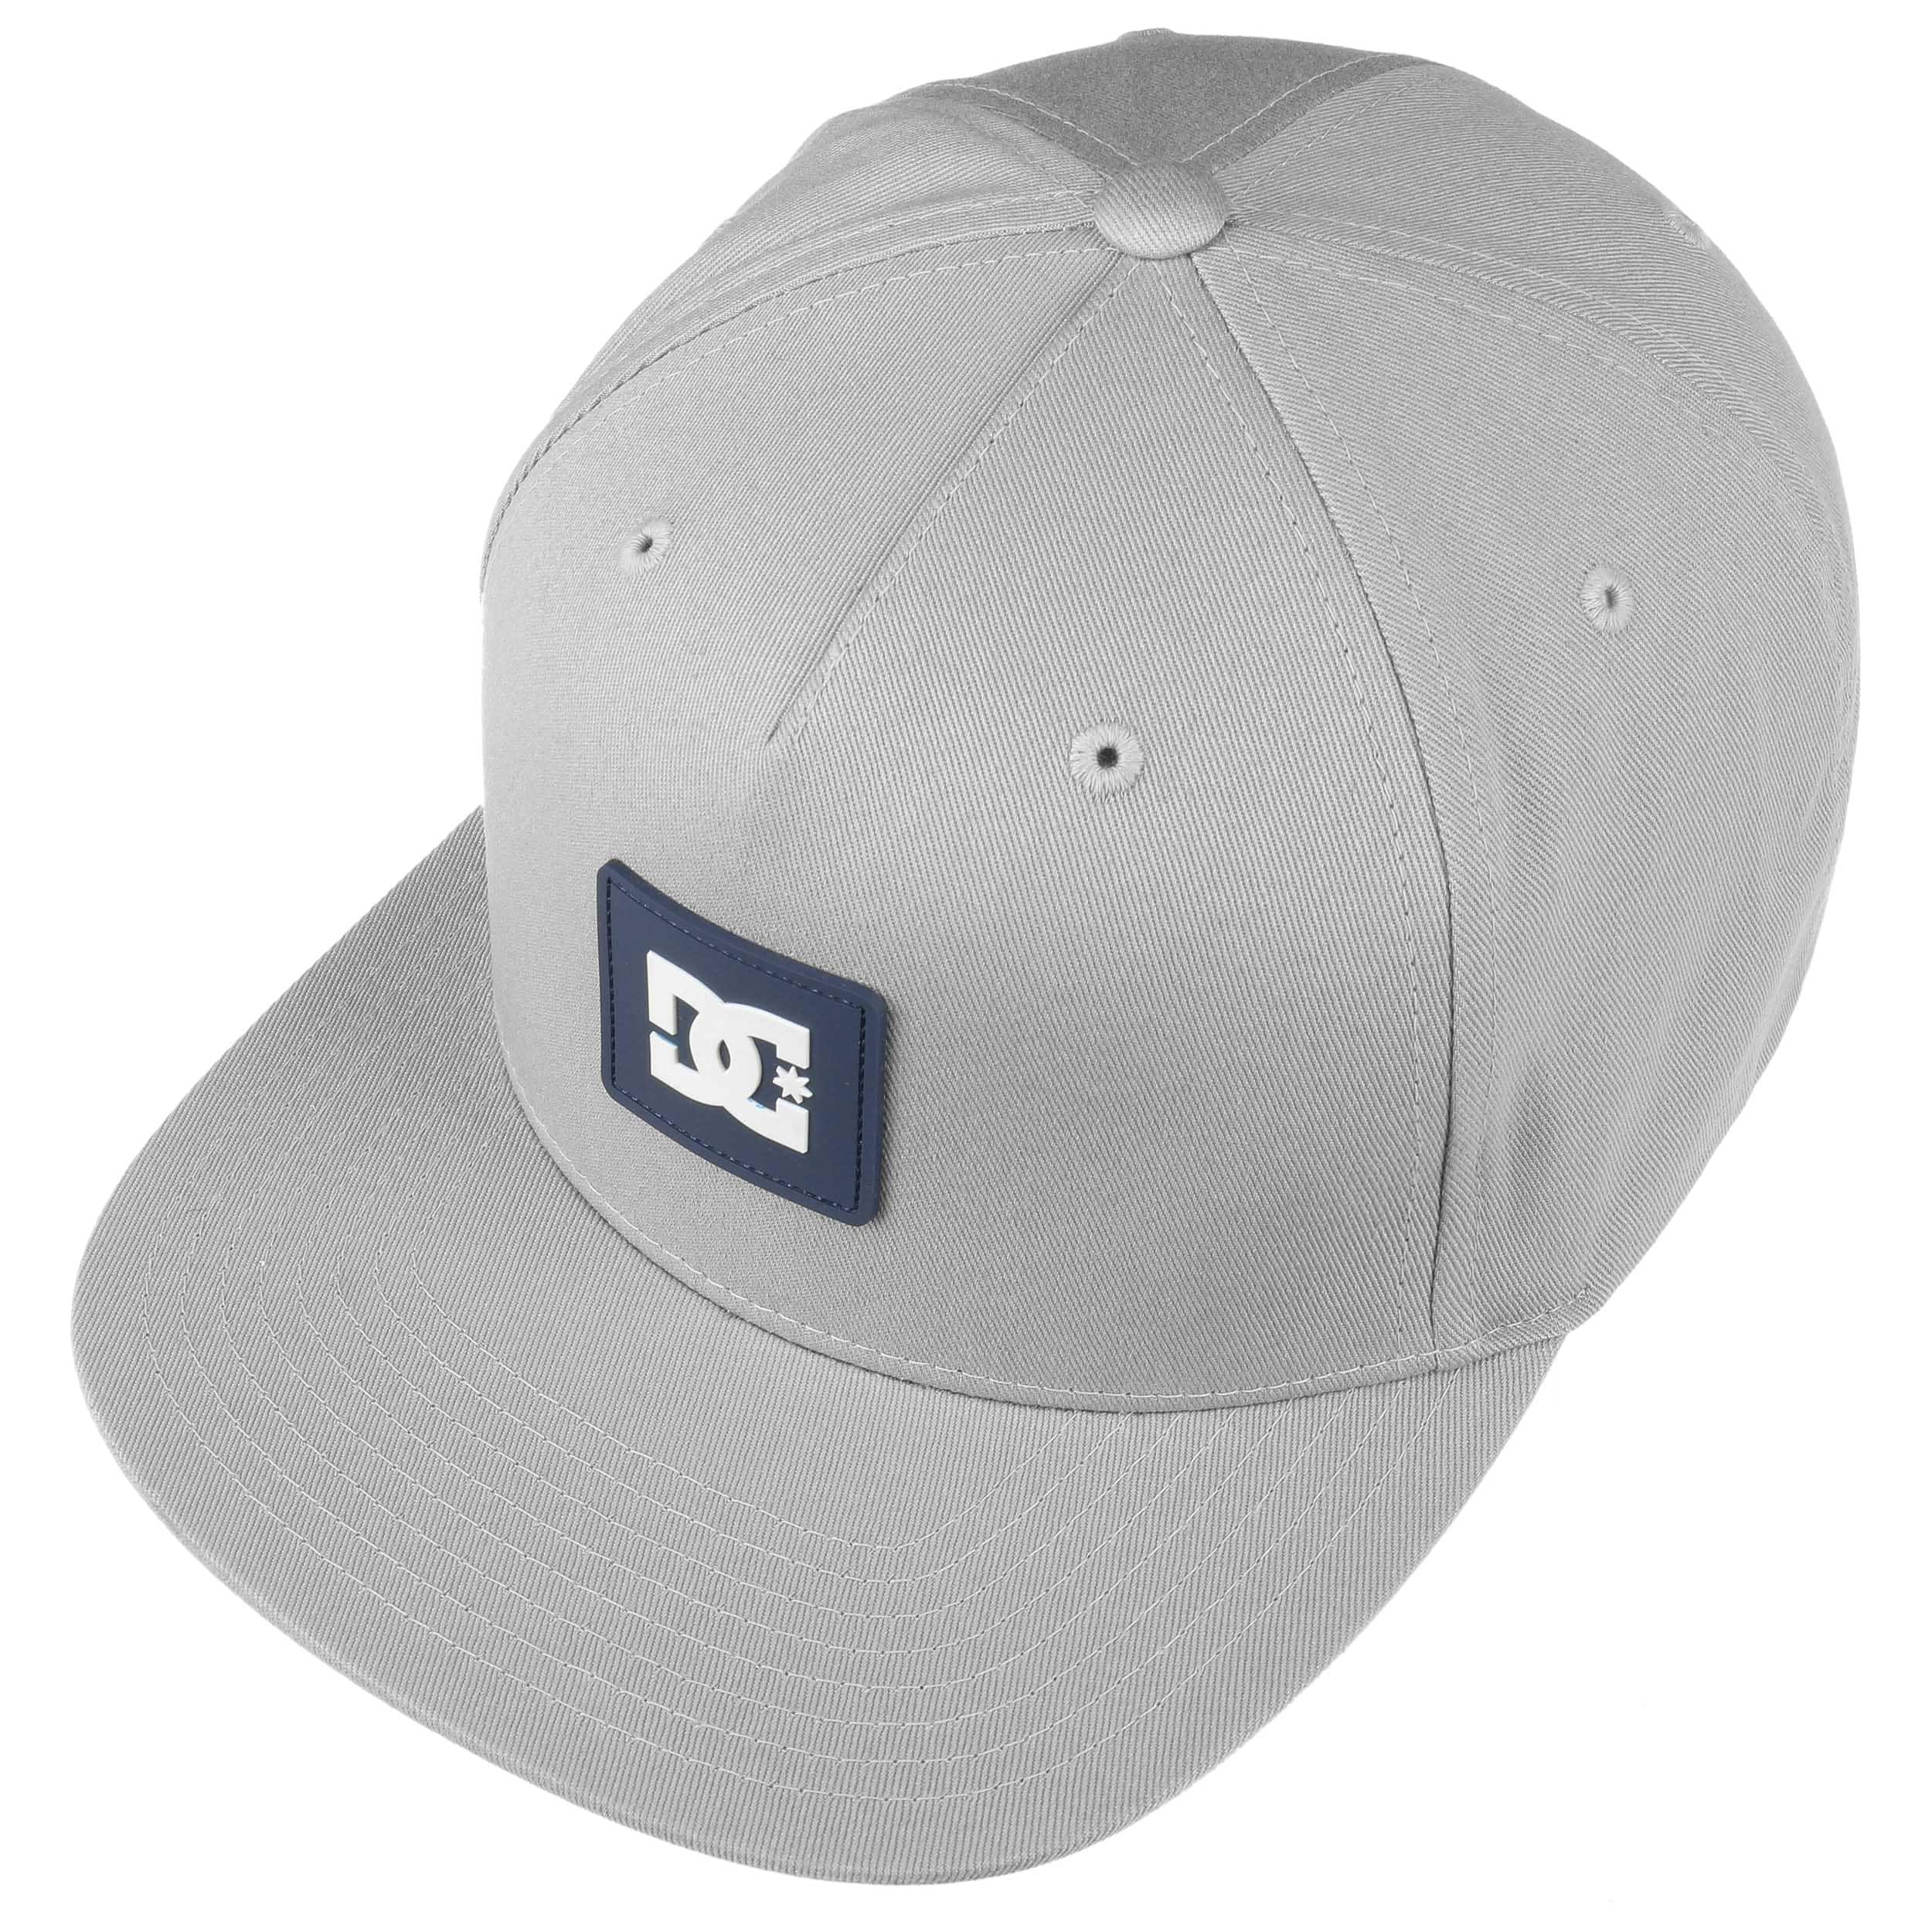 06aee94eb73 Snapdoodle Snapback Cap by DC Shoes Co - light grey 1 ...